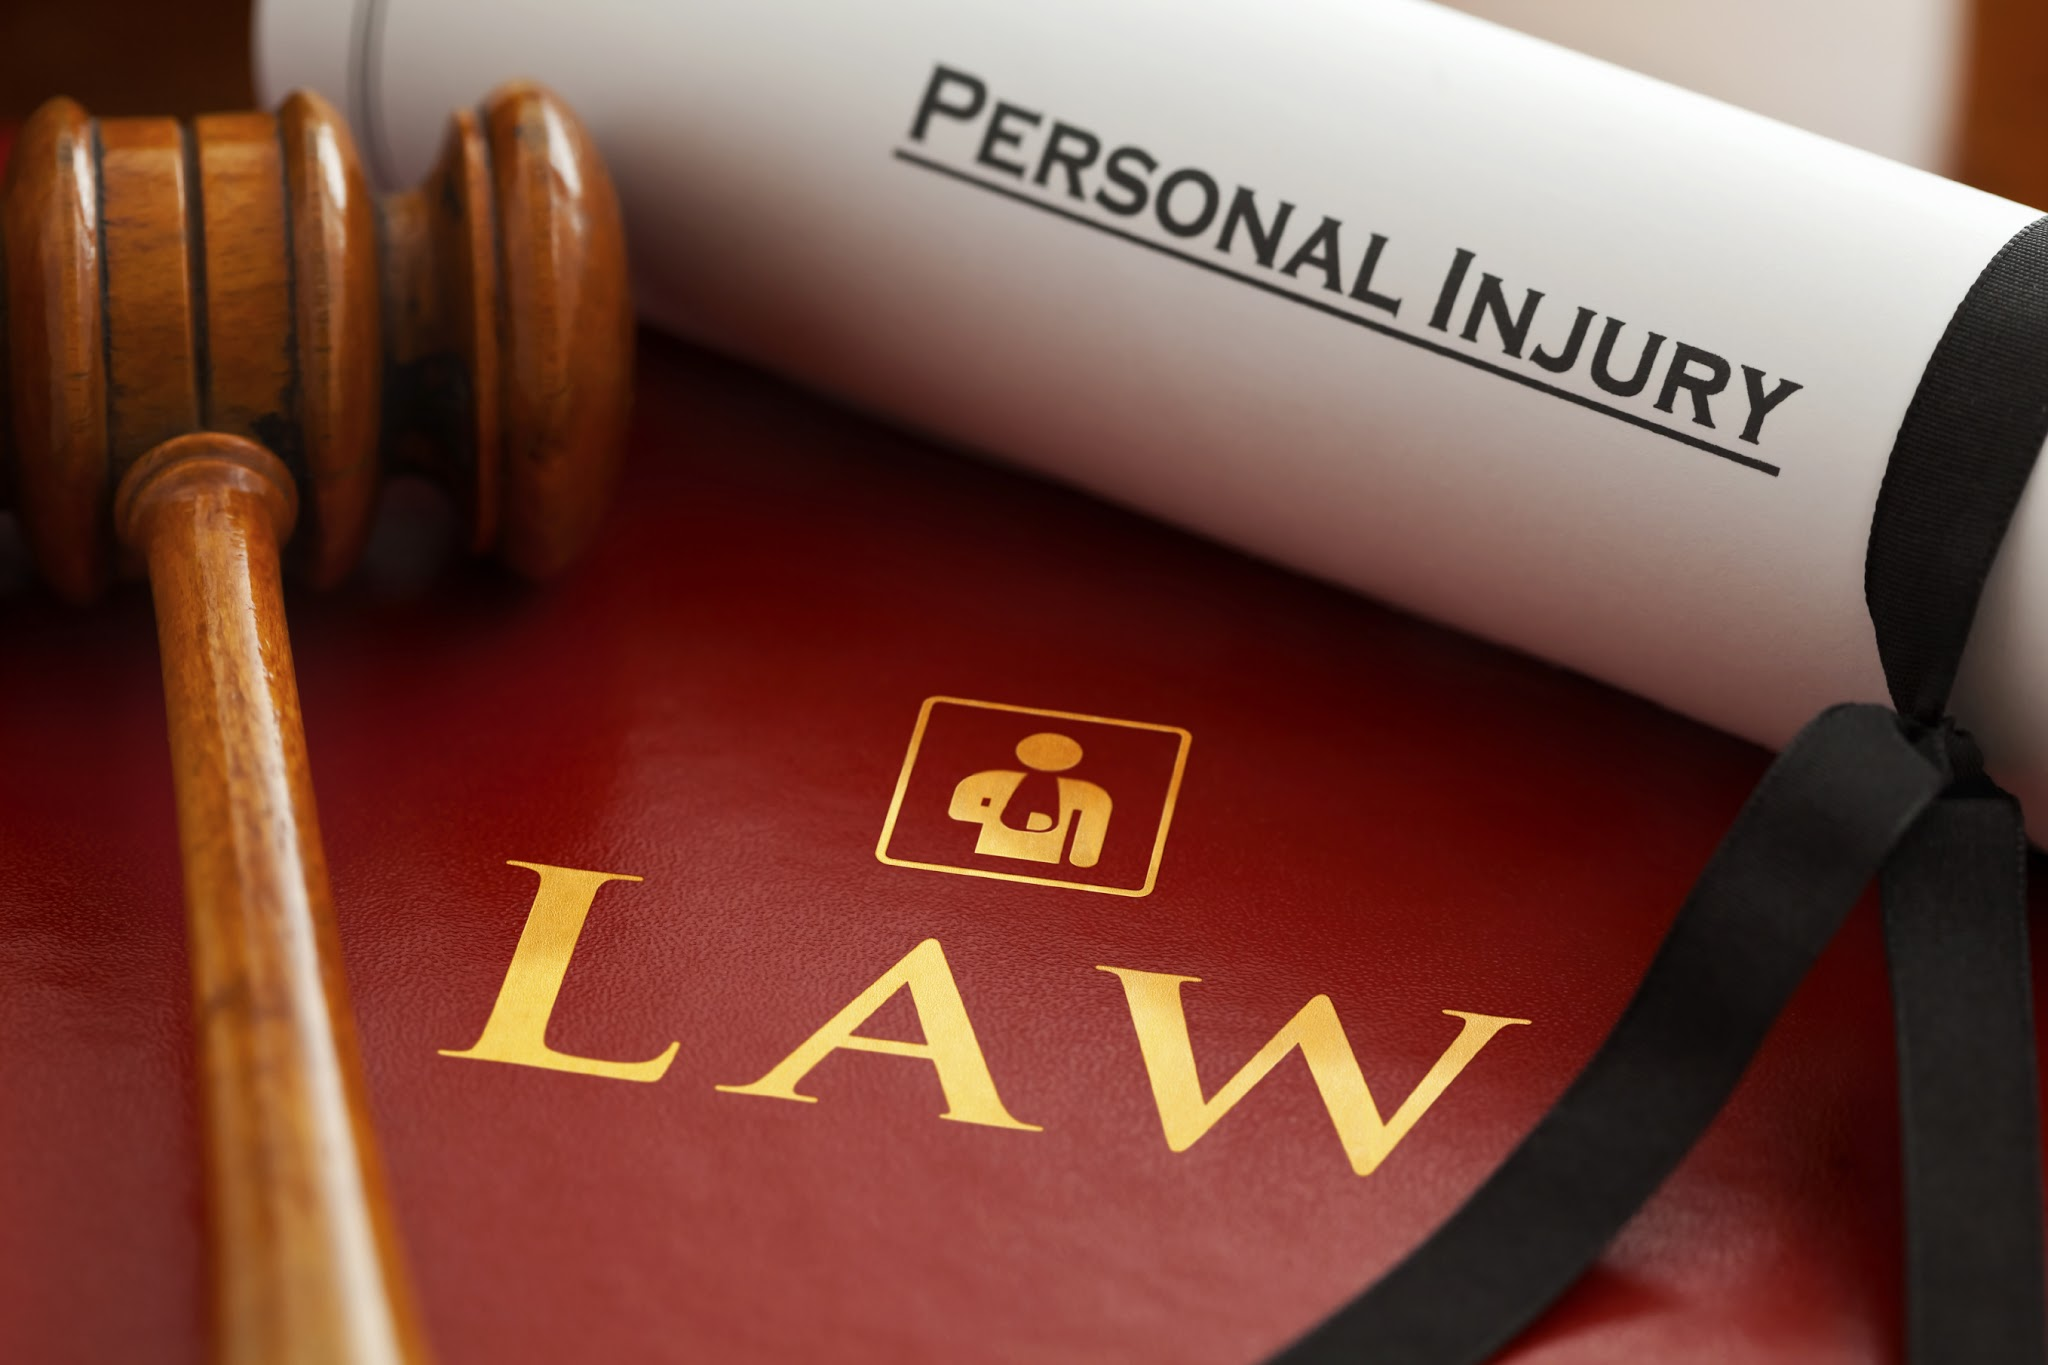 Personal injury case going to court